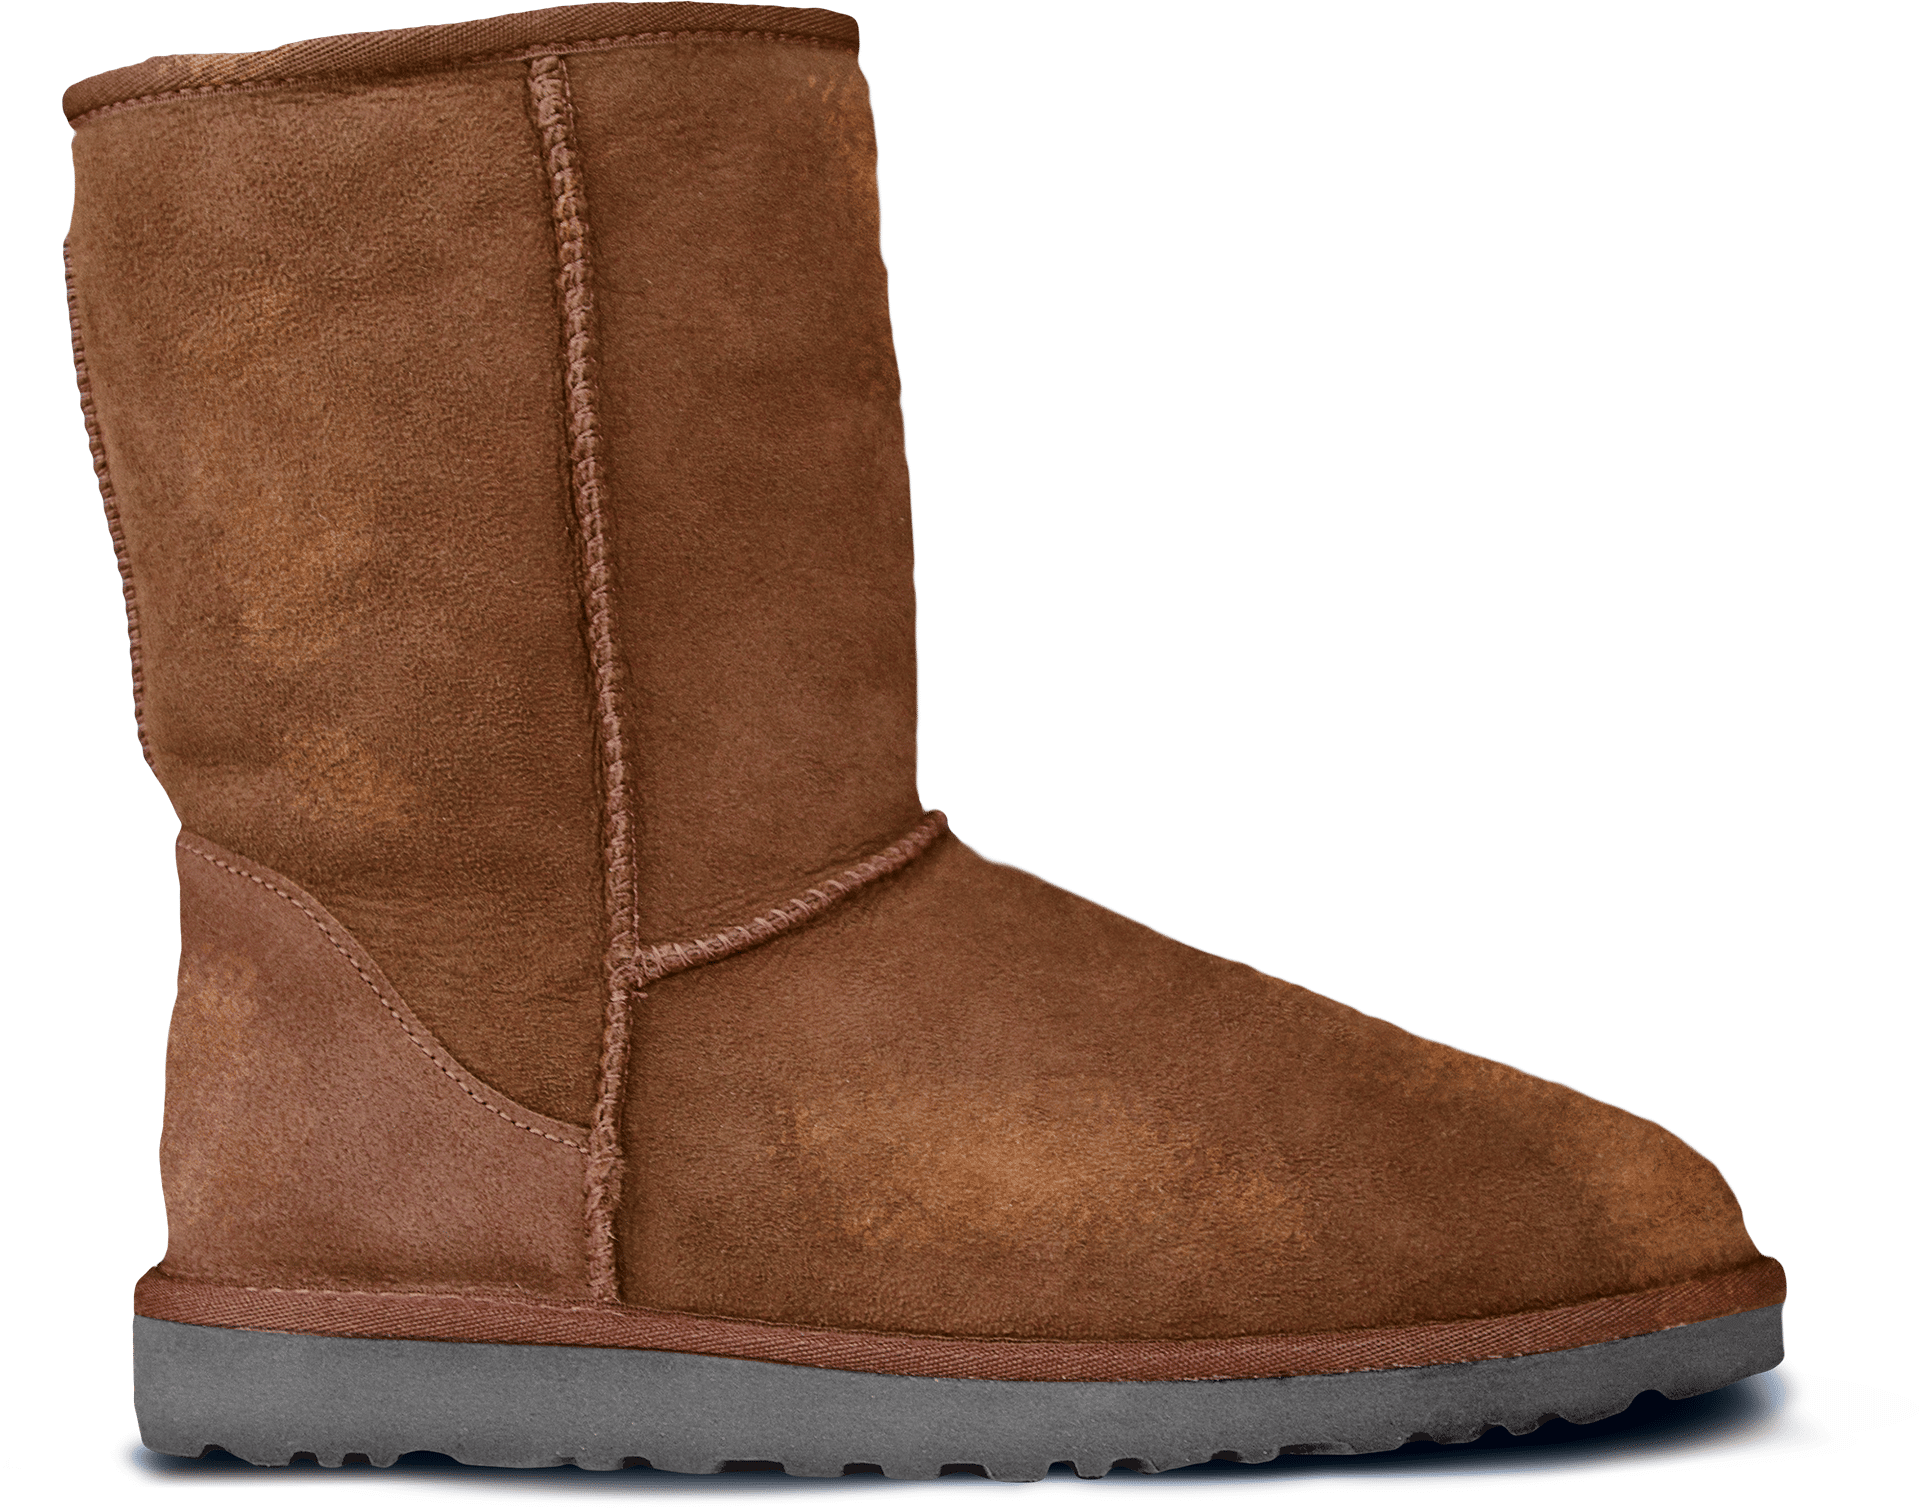 Graphic Boots Clearcut